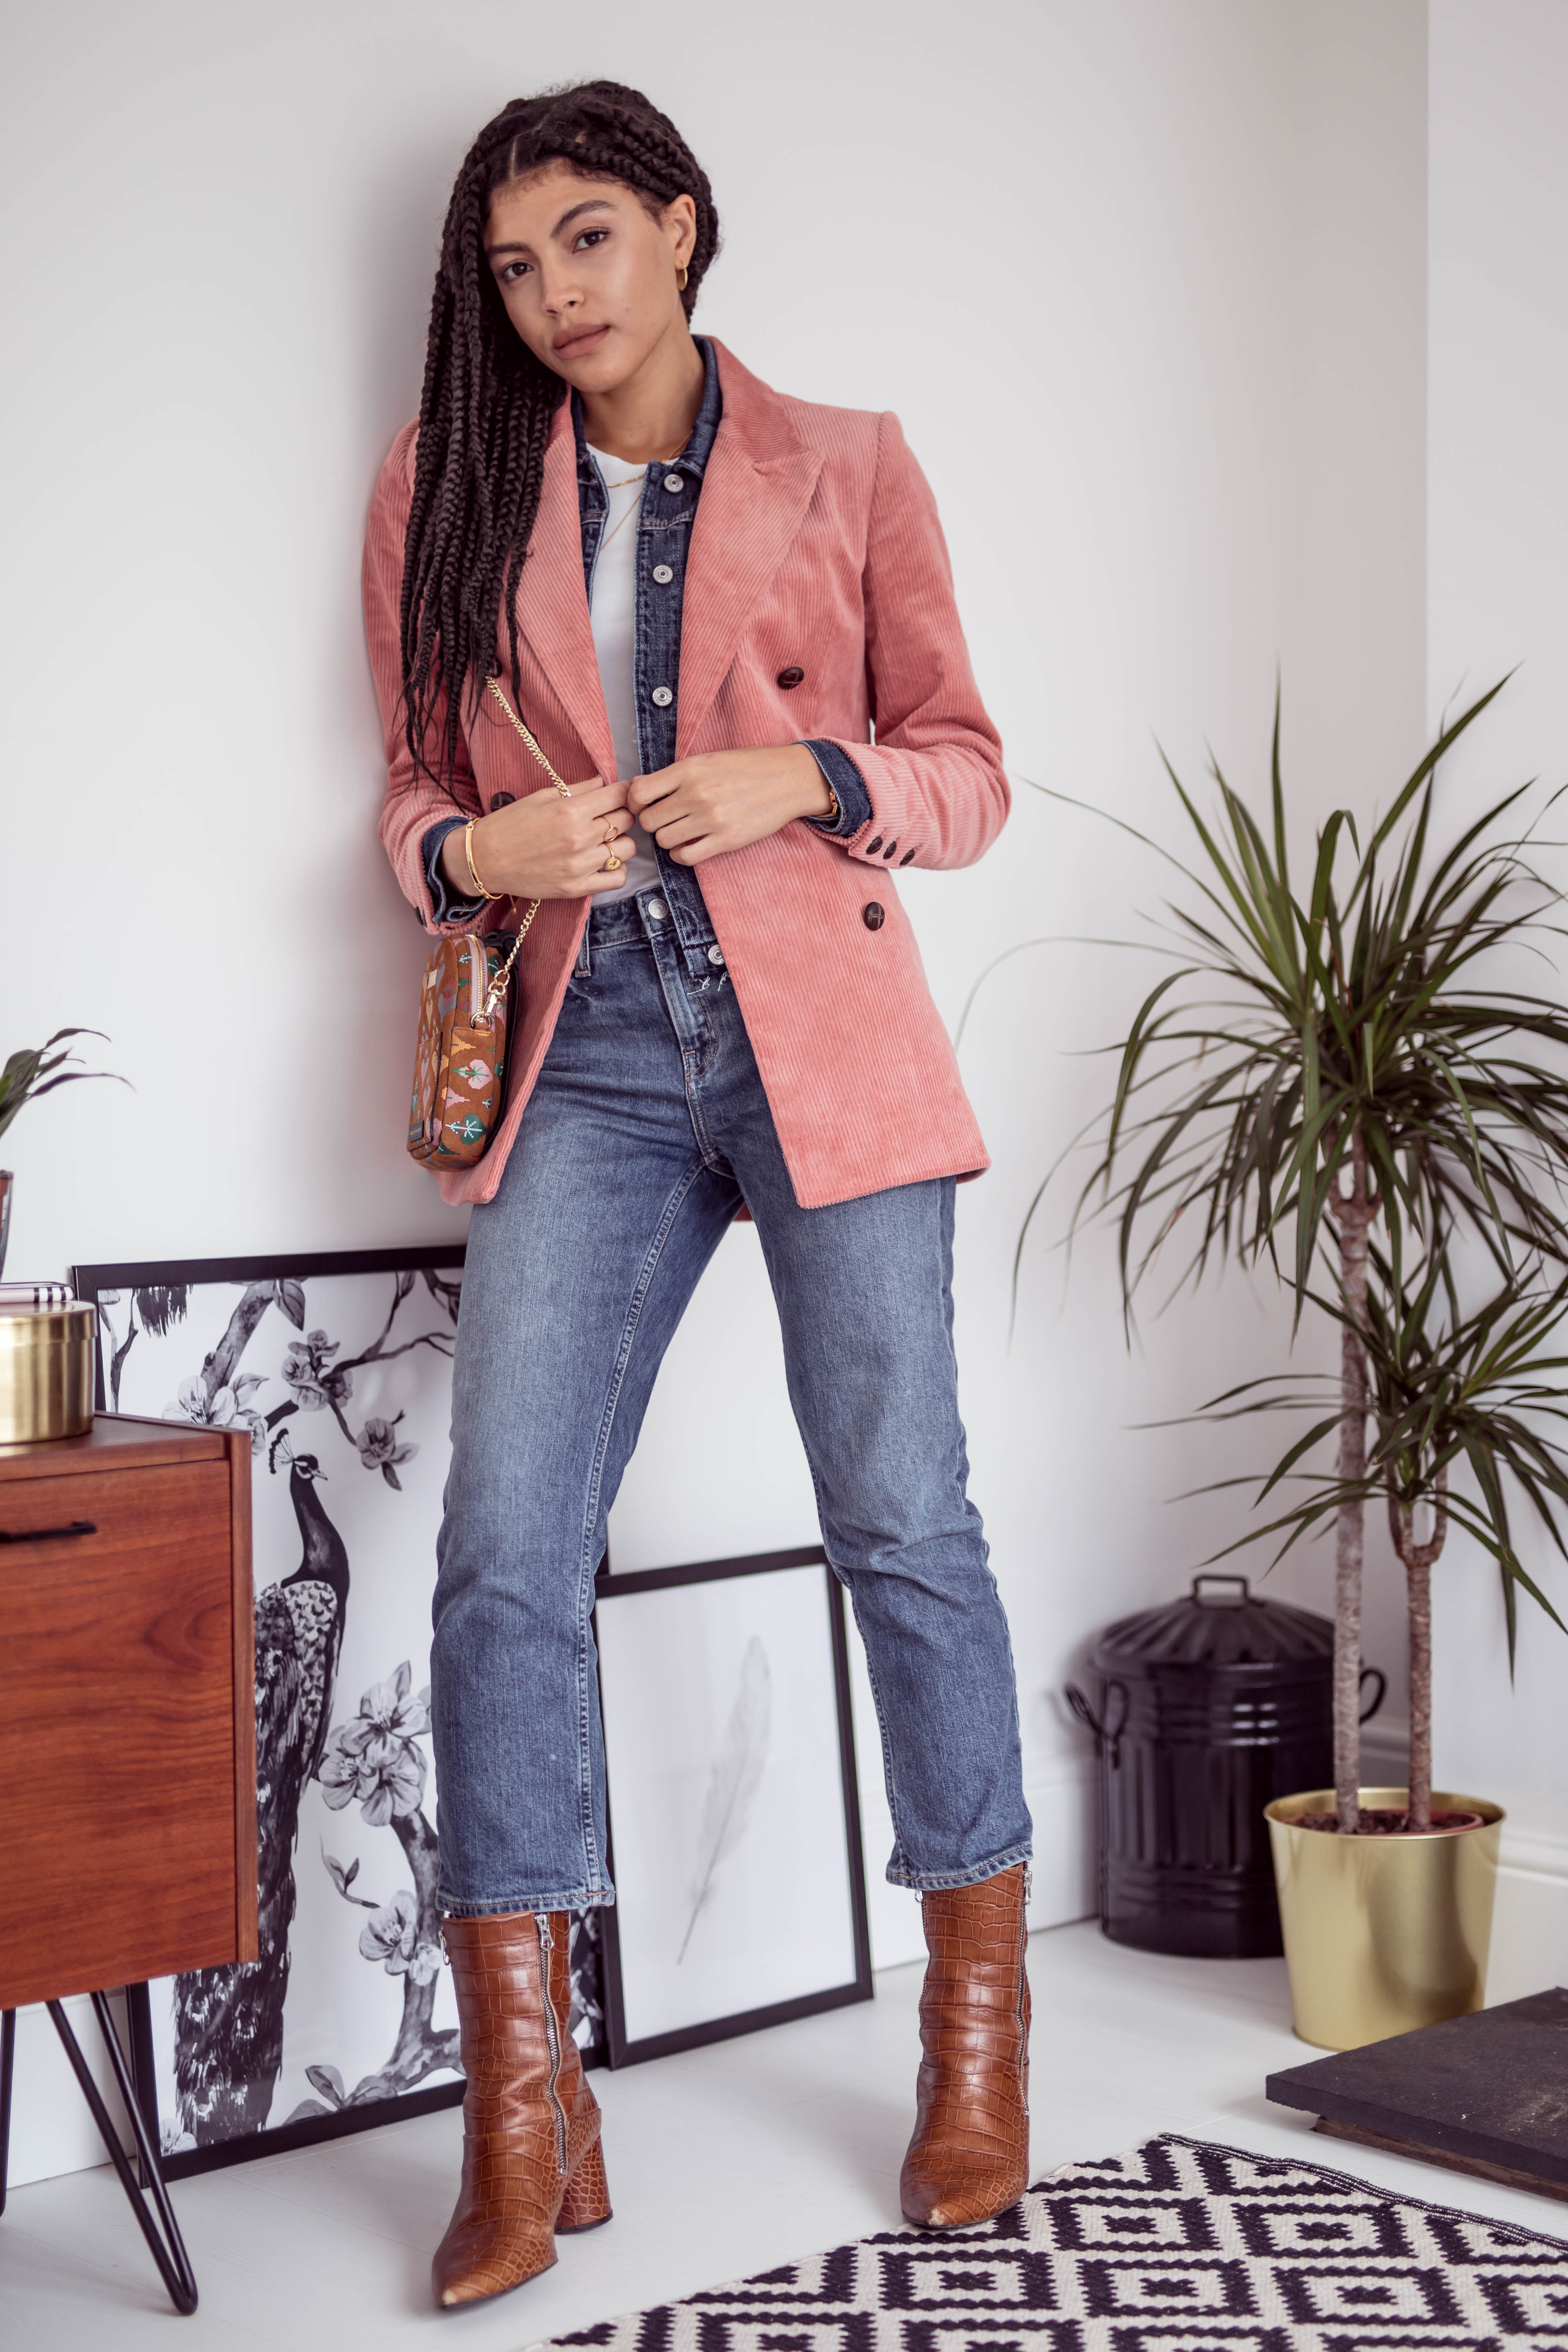 Samio transitional AW18 outfit double denim layering and Other Stories Double Breasted Corduroy Blazer